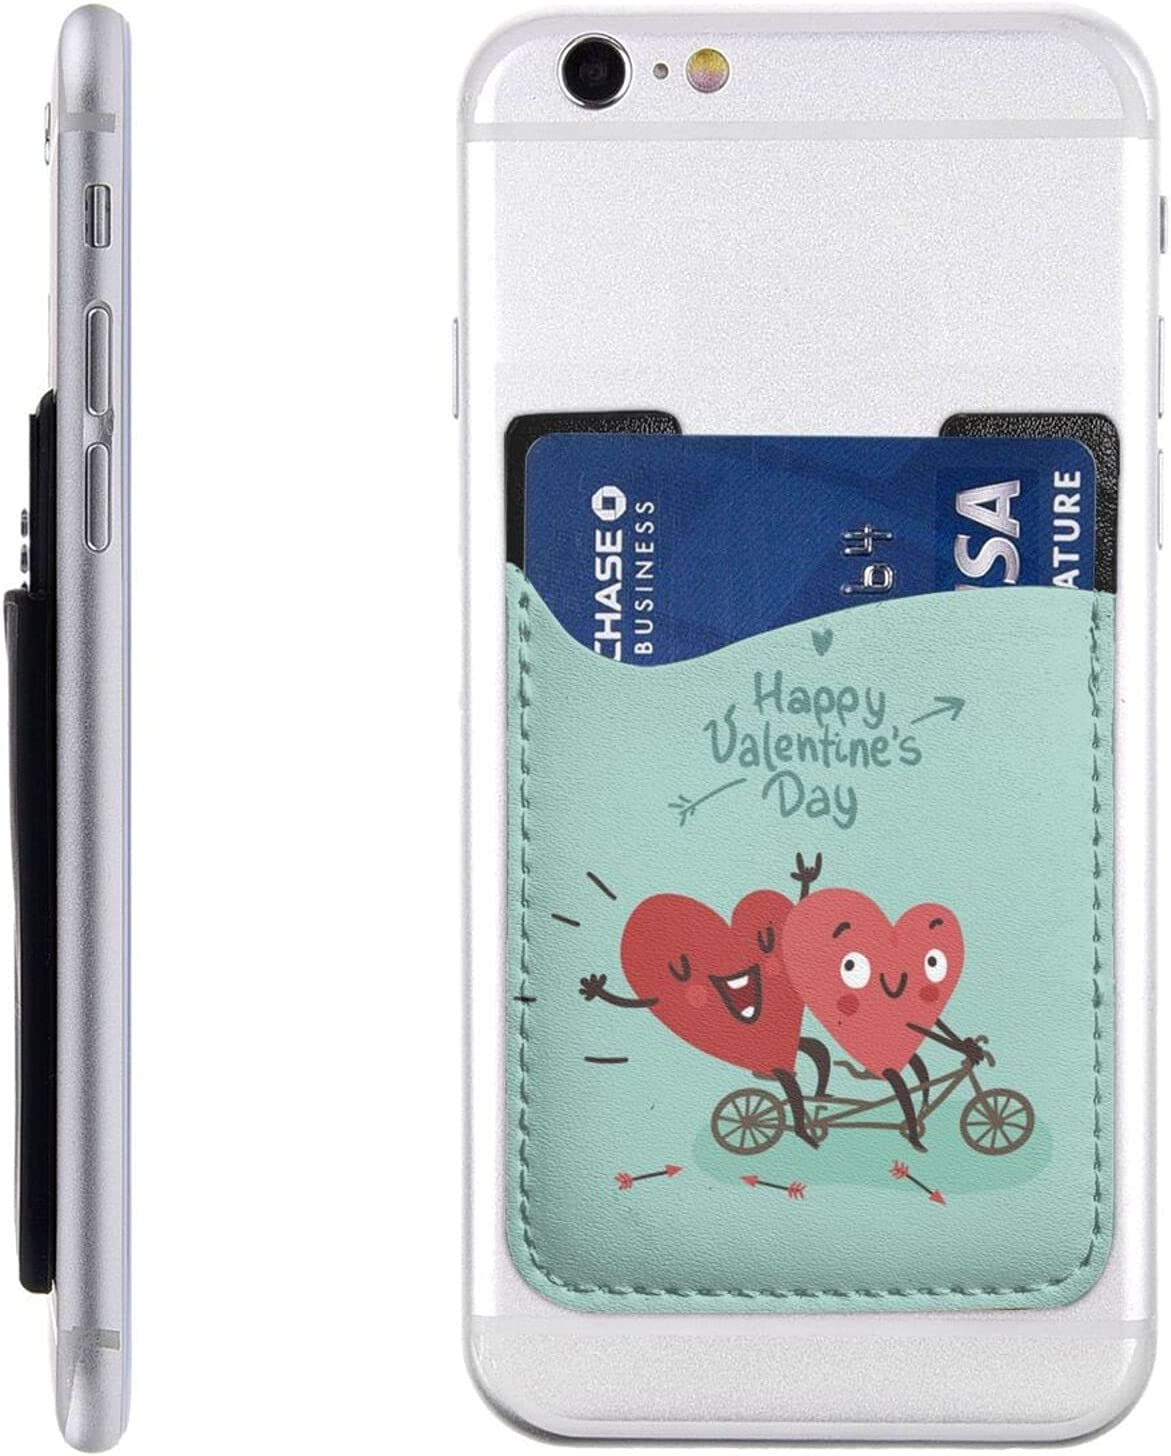 Two Hearts Fall in Love On Sales of SALE items from new works Holder Cell Manufacturer regenerated product Phone Bicycle Card